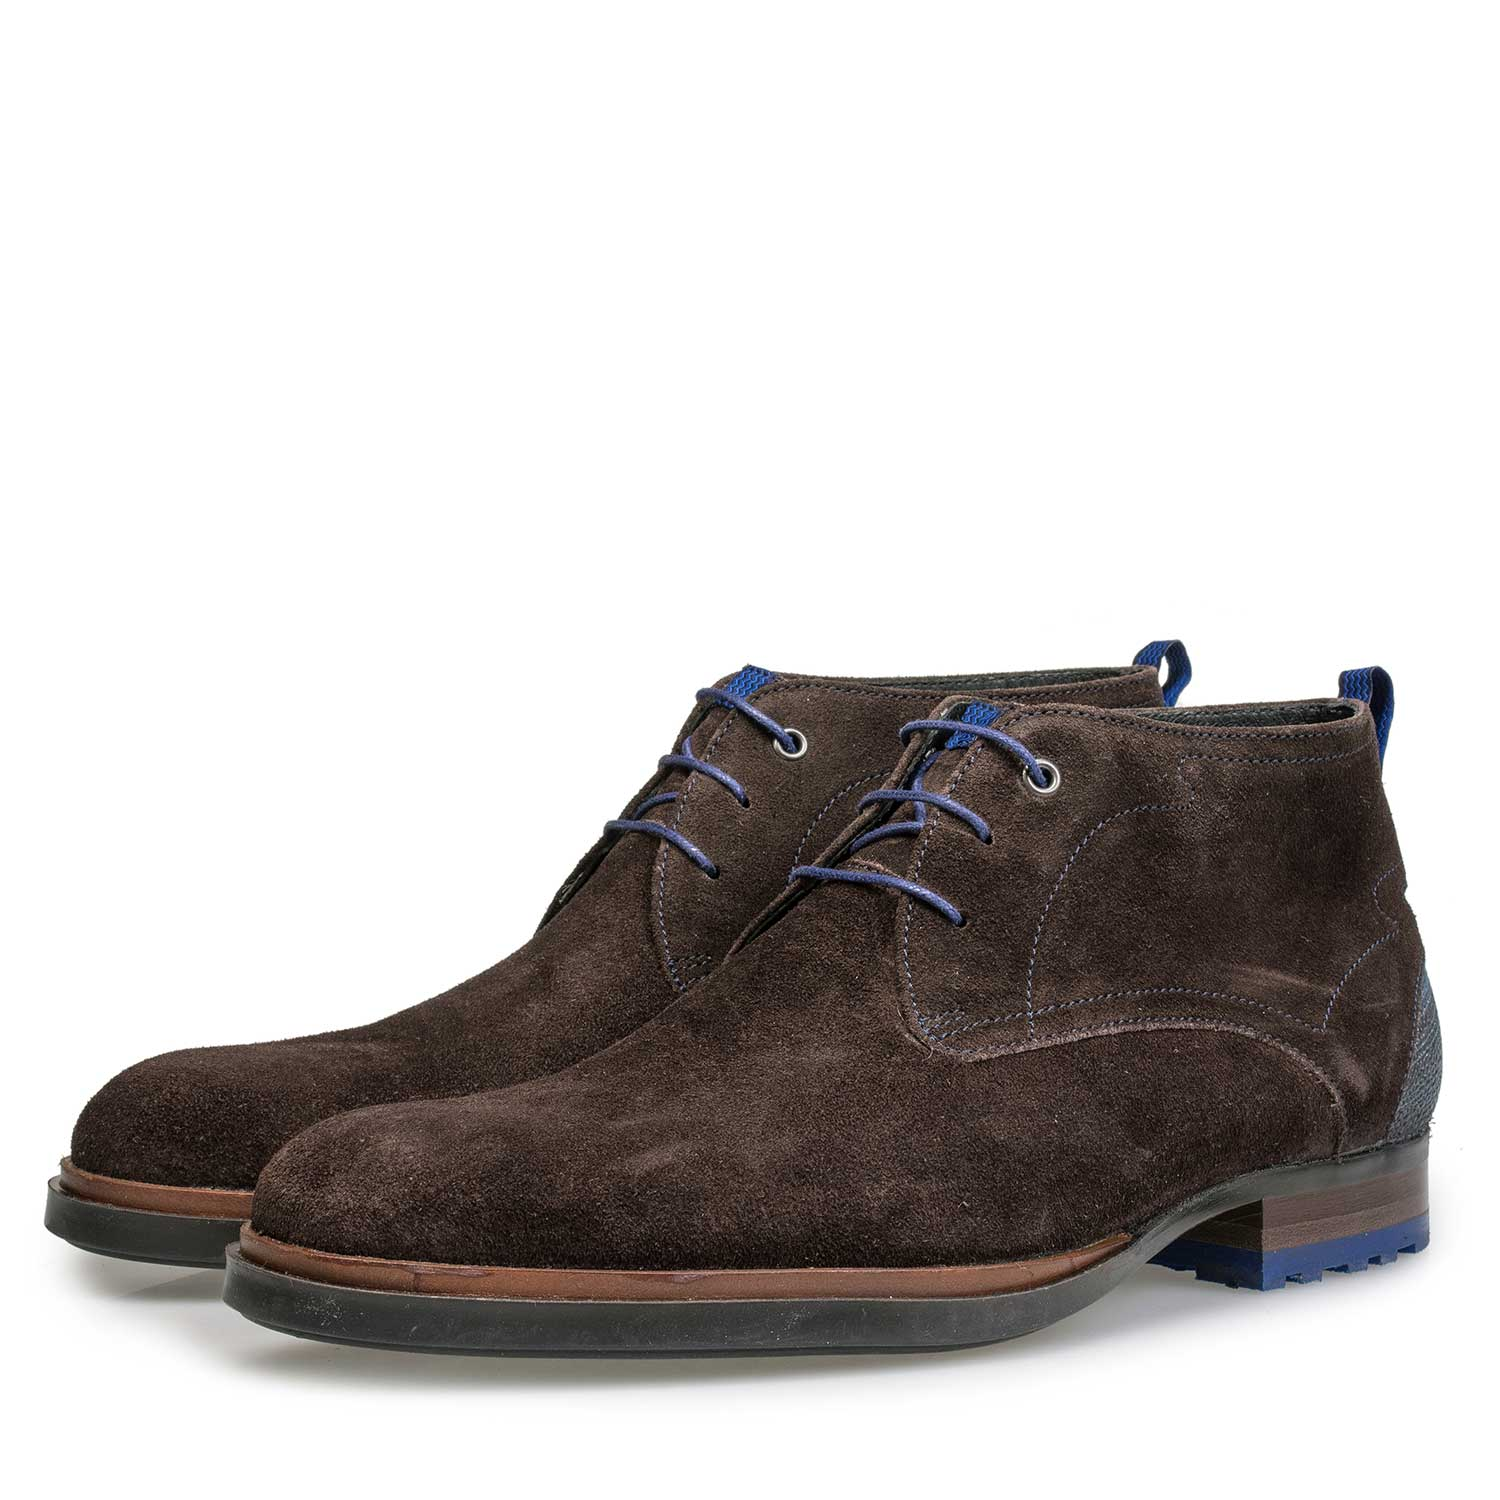 10947/11 - Dark brown calf's suede leather lace boot